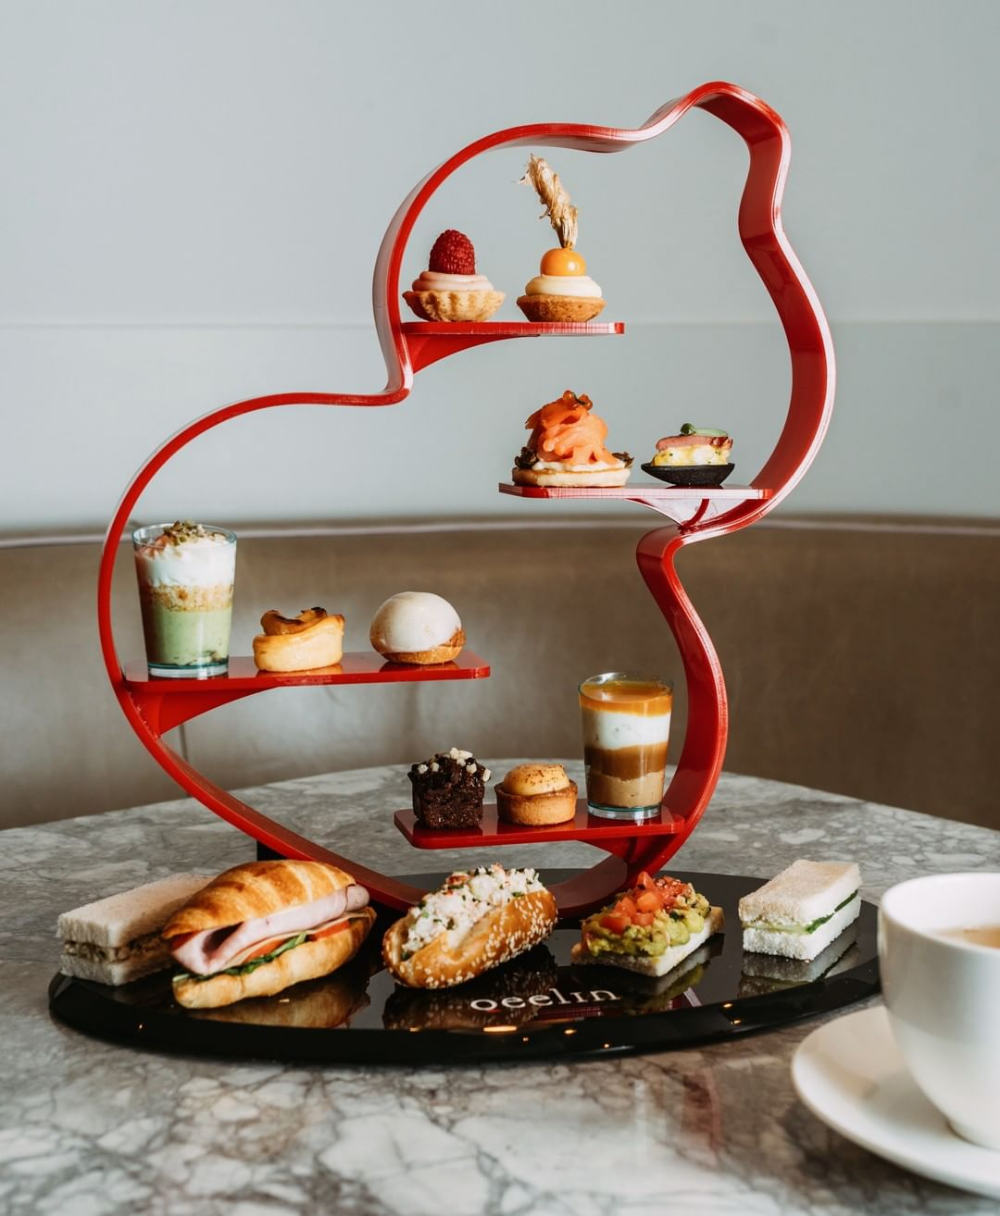 Best Afternoon Tea Colette Grand Cafe Holt Renfrew Yorkdale Mall Bloor St For An Instagrammable Afternoon The Parisian Inspired Patisserie Tuc